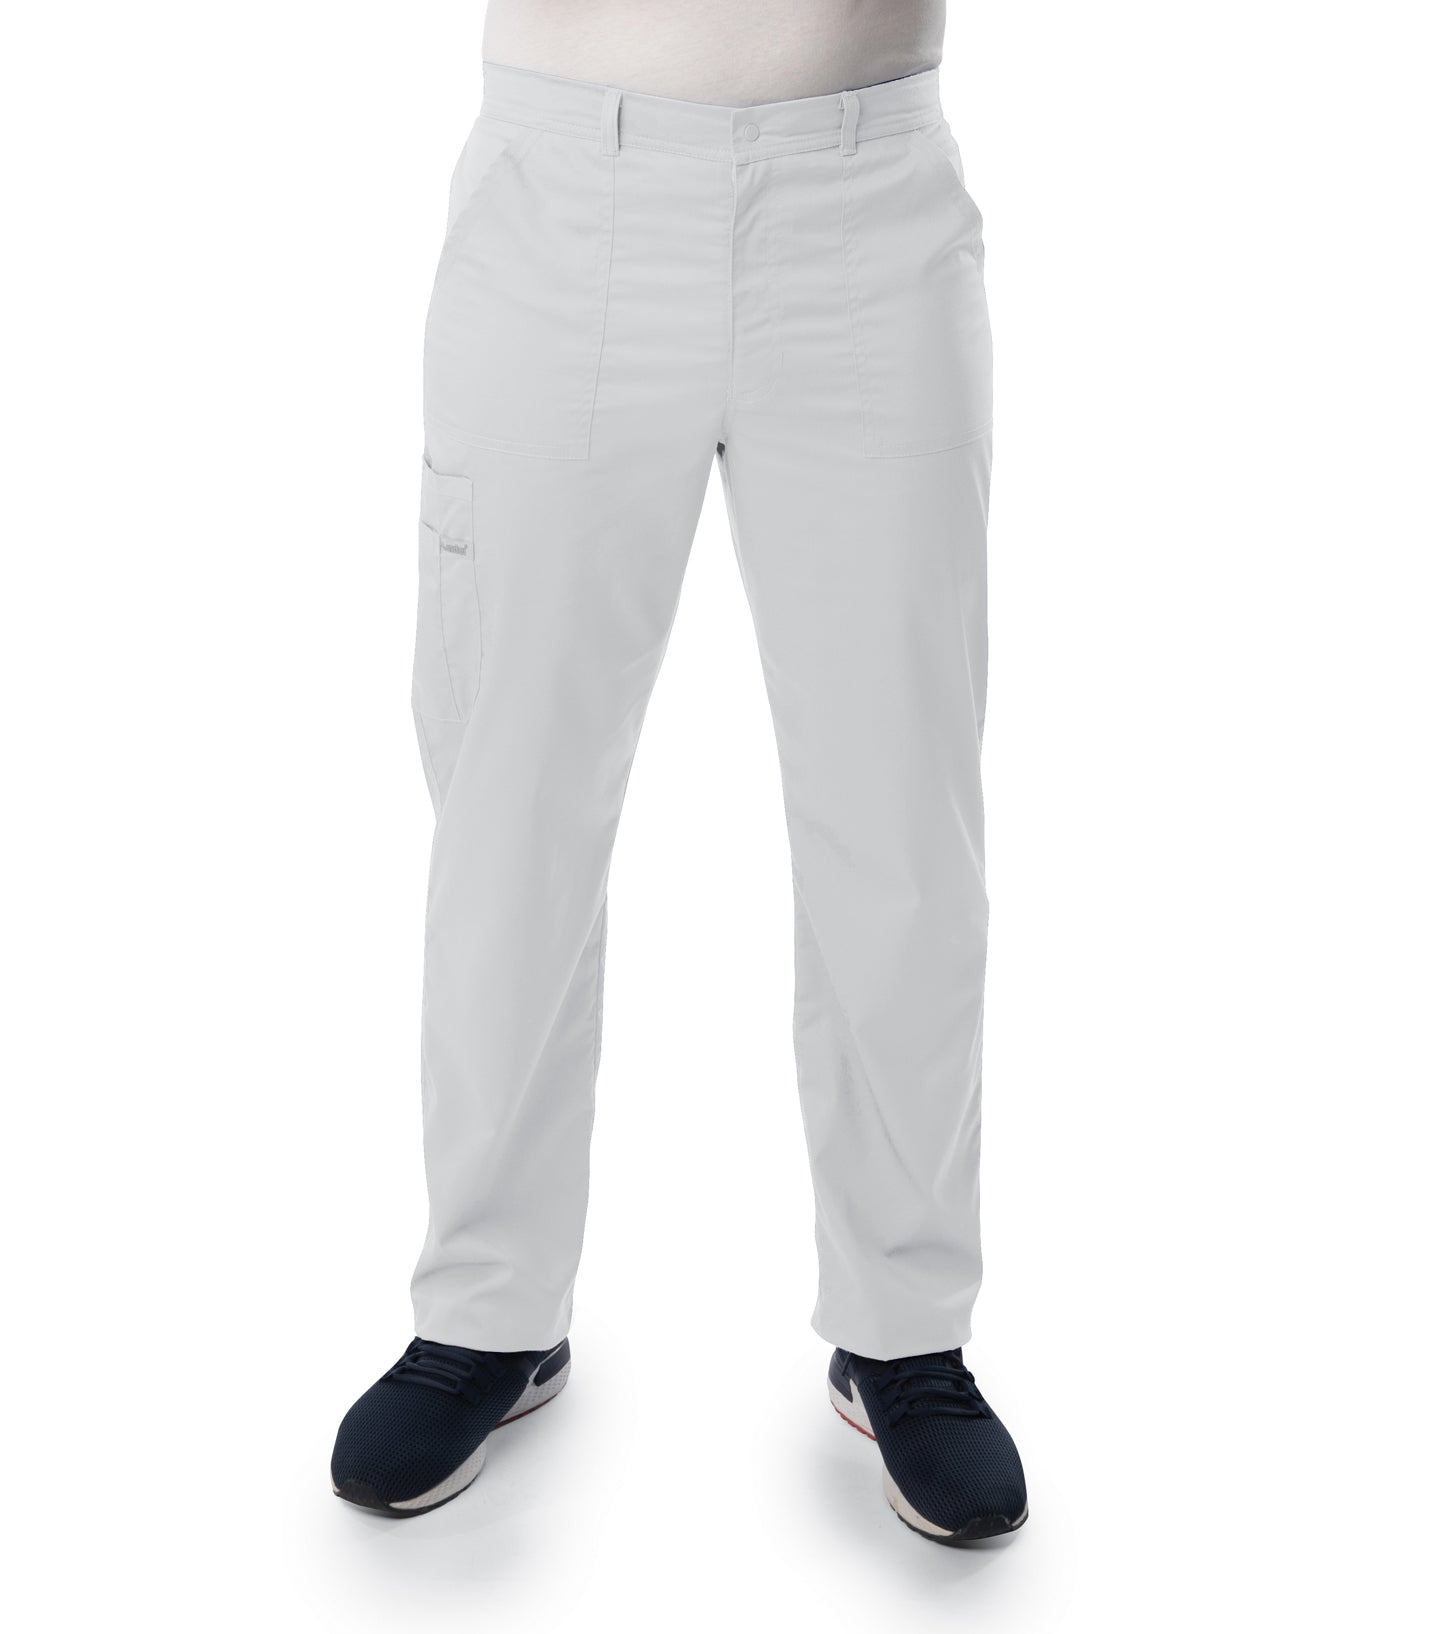 Landau Proflex Men's Scrub Pants